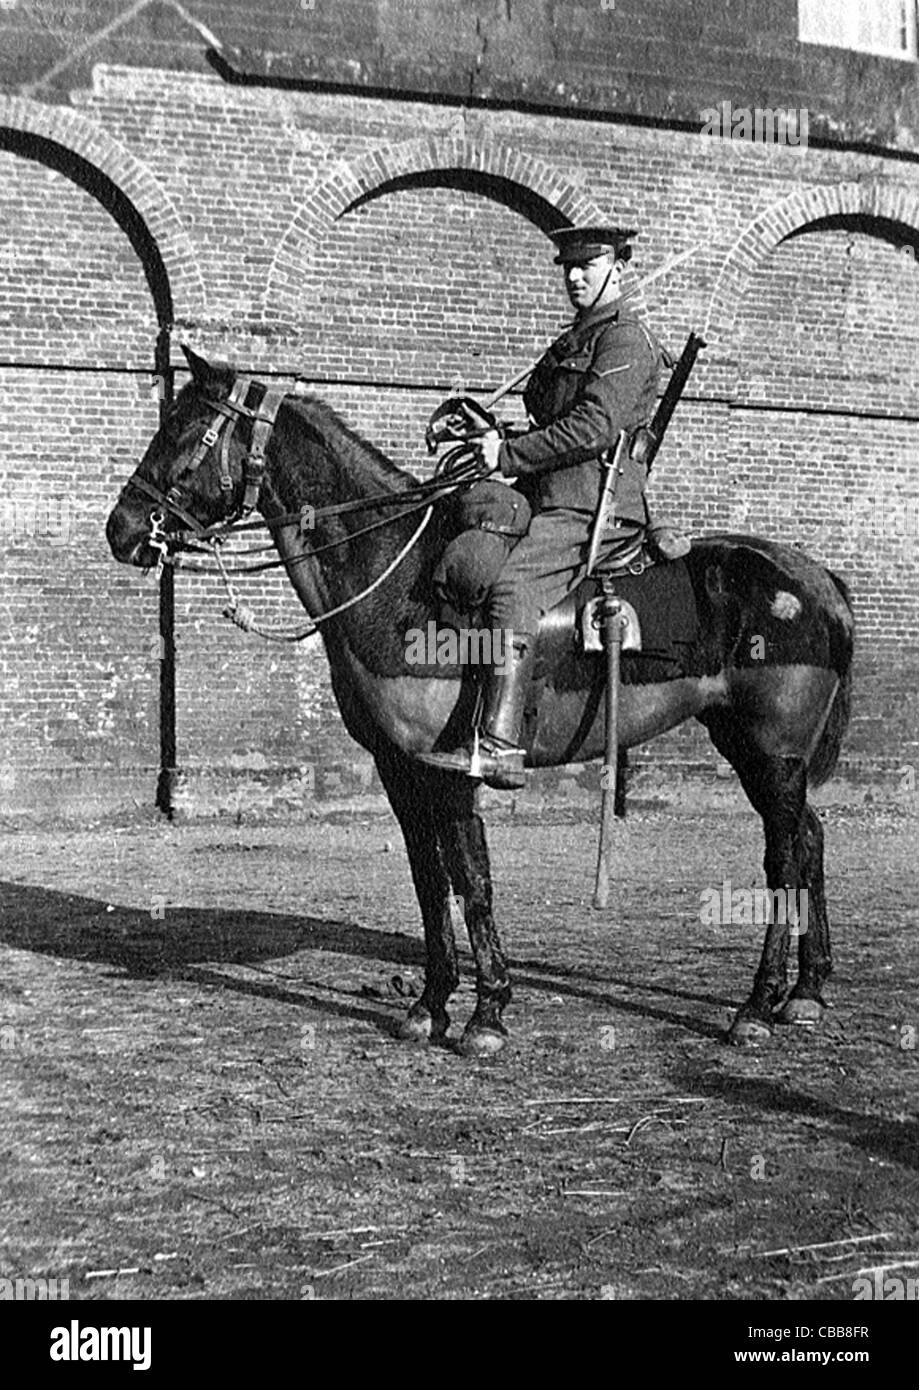 A WW1 mounted  British cavalry trooper with sword, rifle and bayonet. - Stock Image